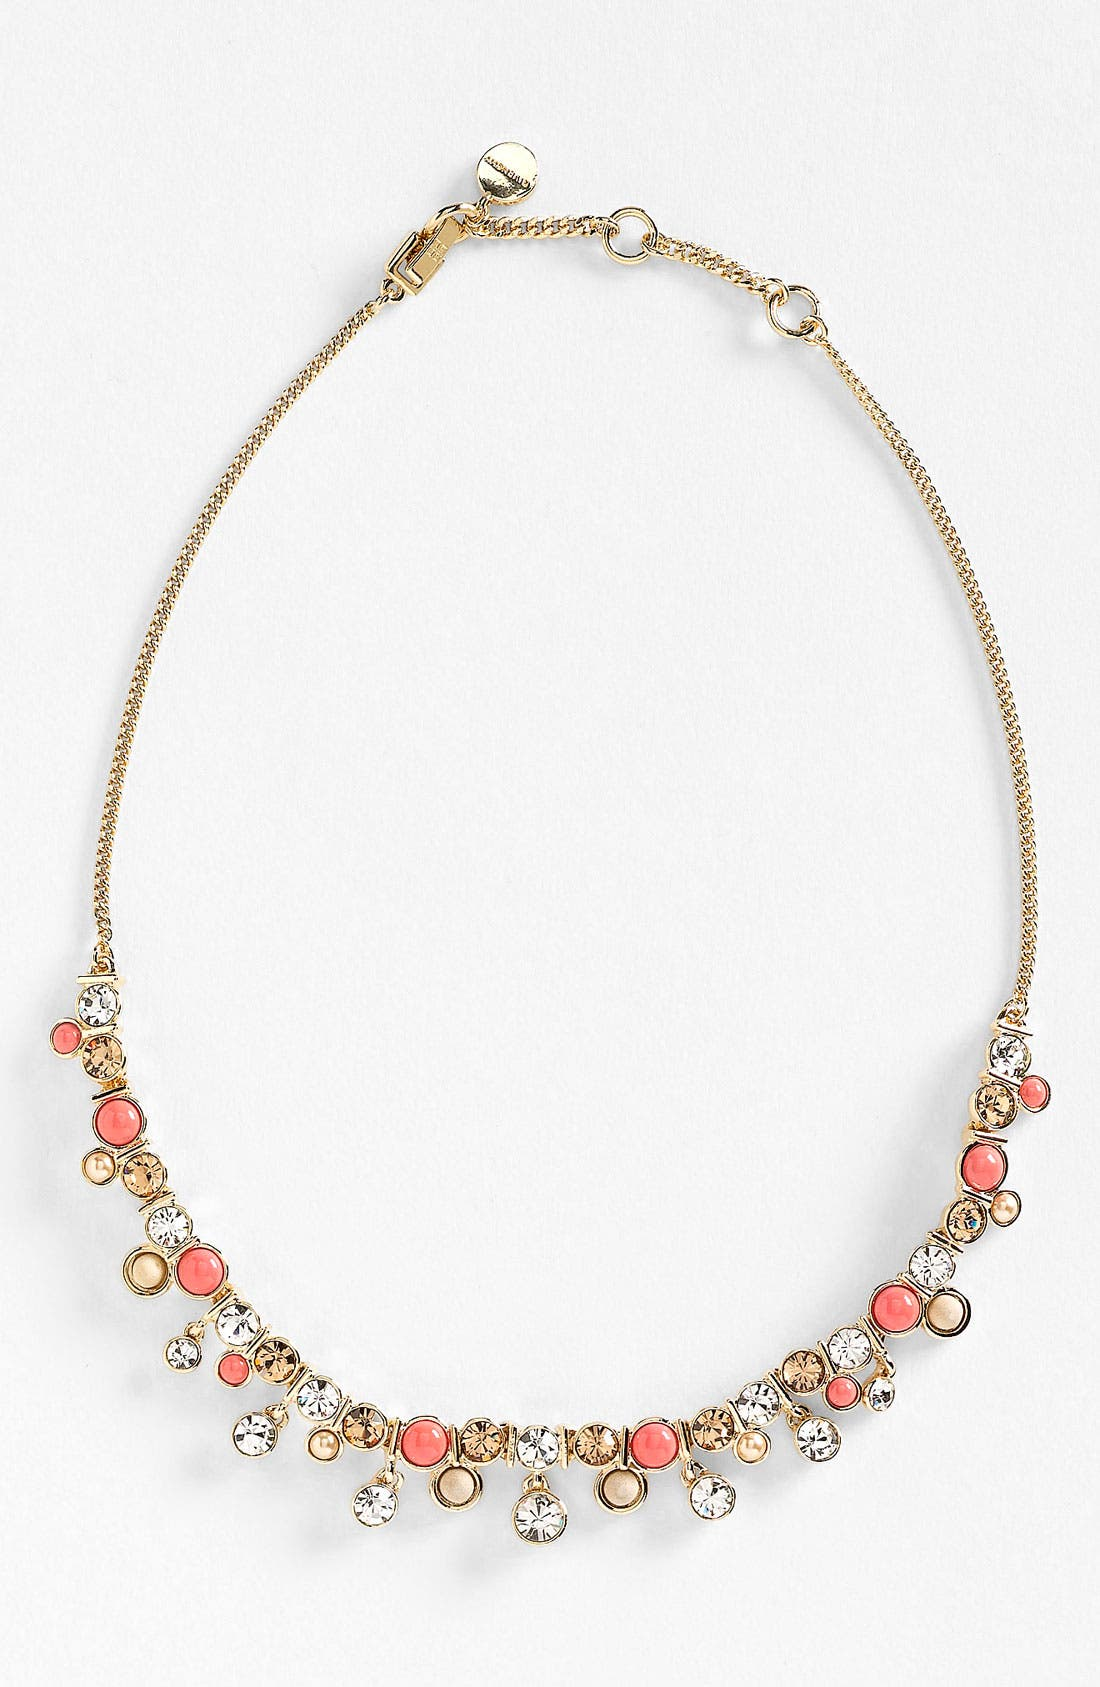 Alternate Image 1 Selected - Givenchy 'Lark' Crystal & Bead Frontal Necklace